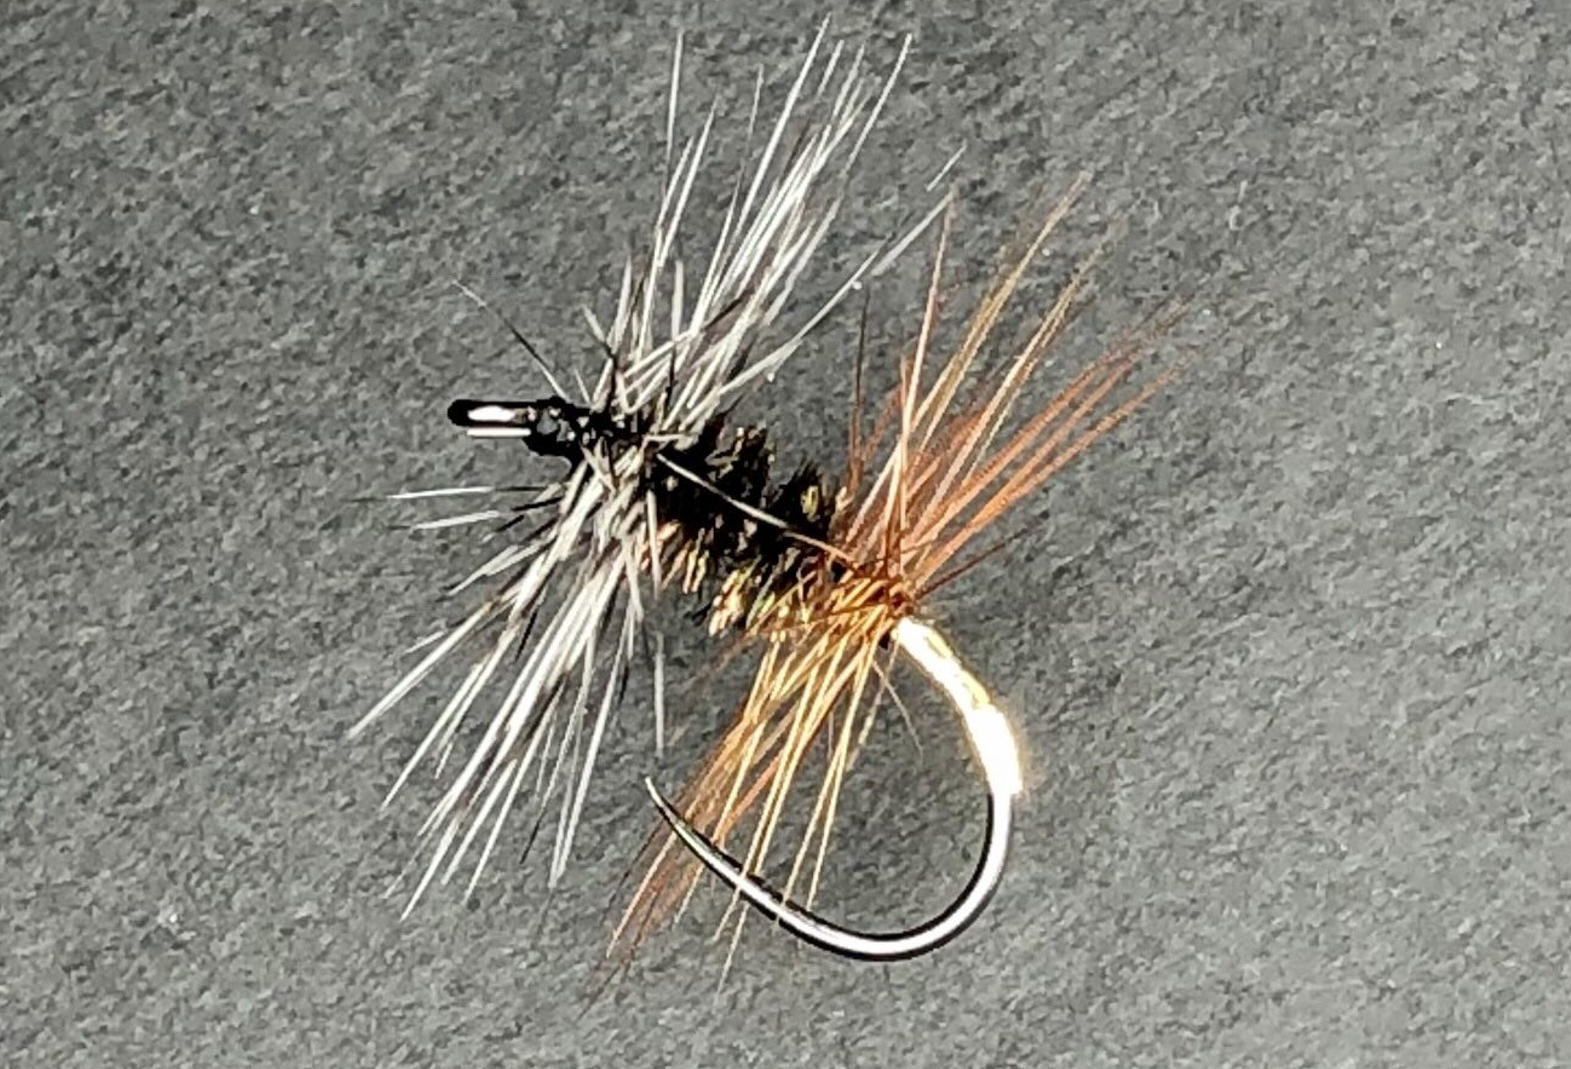 Renegade dry fly - grizzly and brown hackle